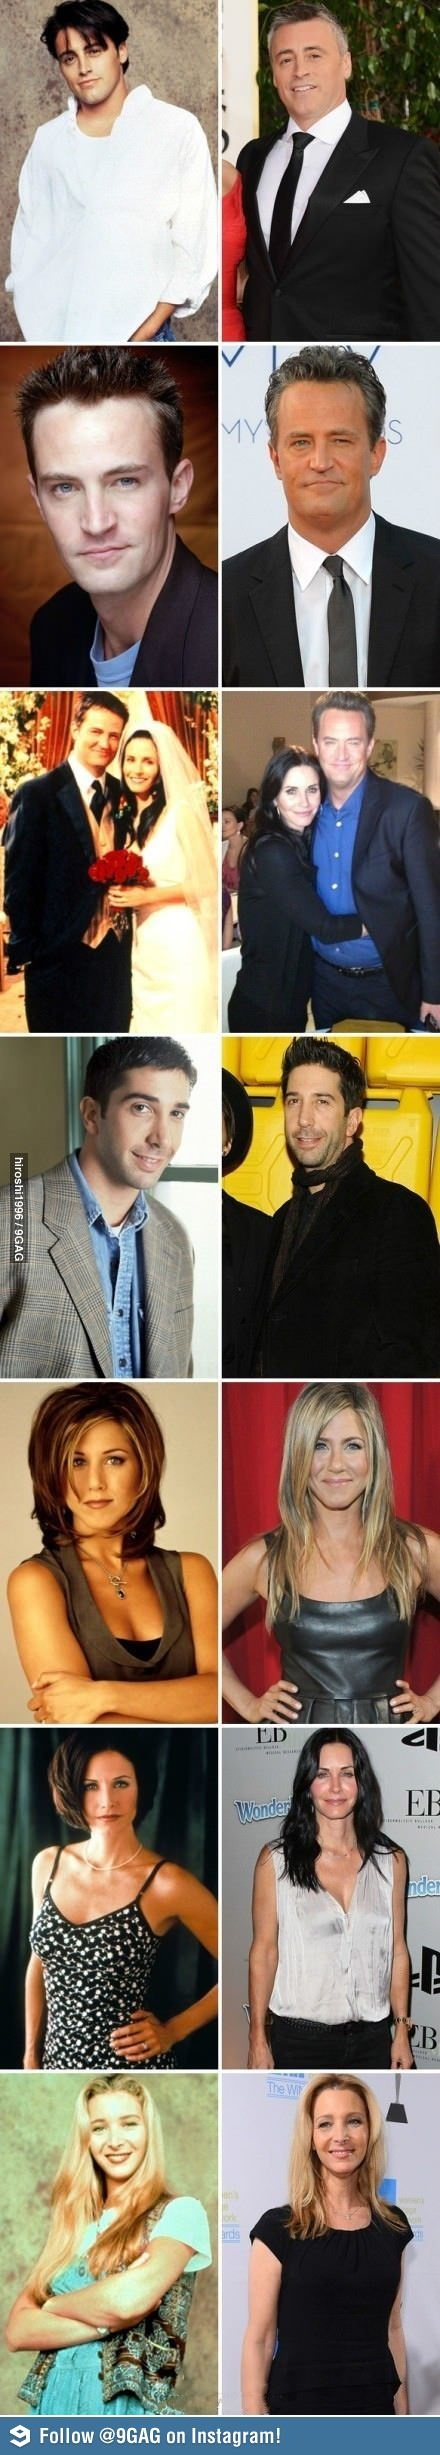 Friends - 19 years later!